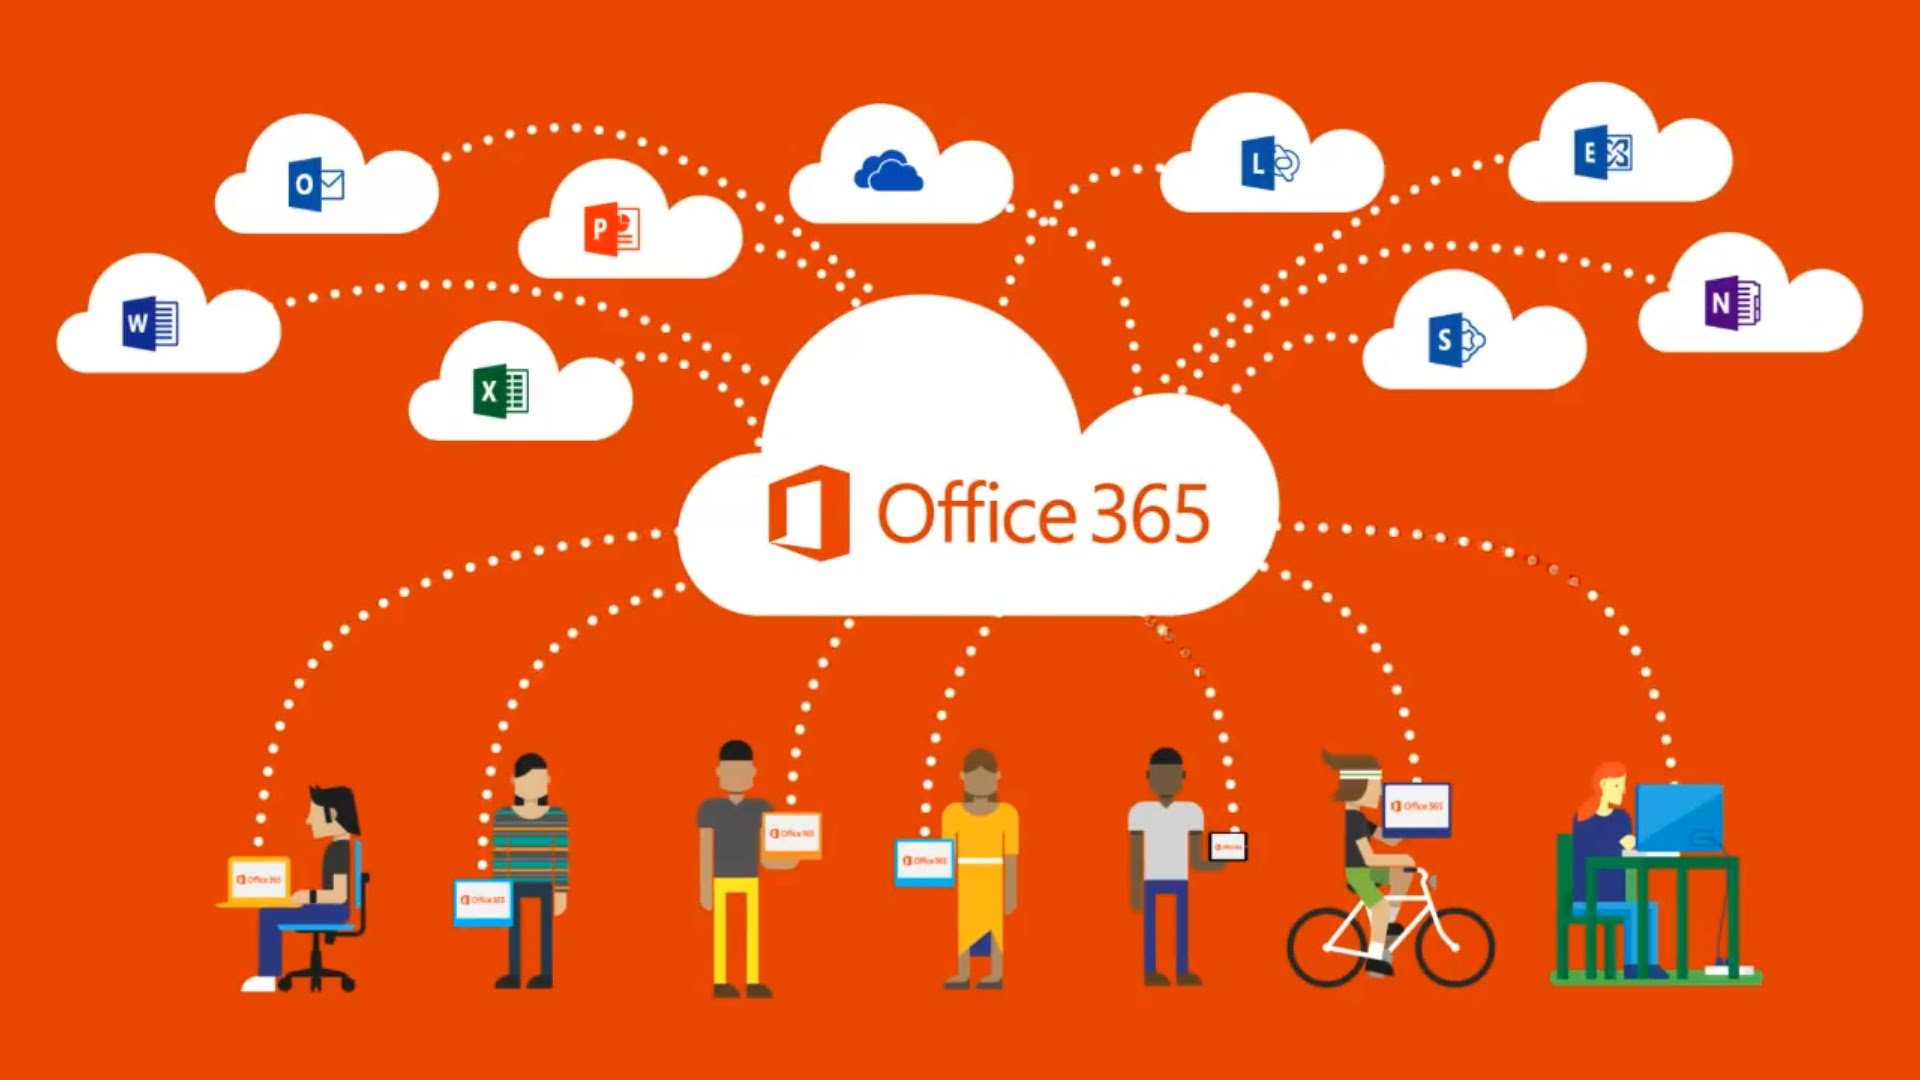 Cloud-based software; Office 365 diagram